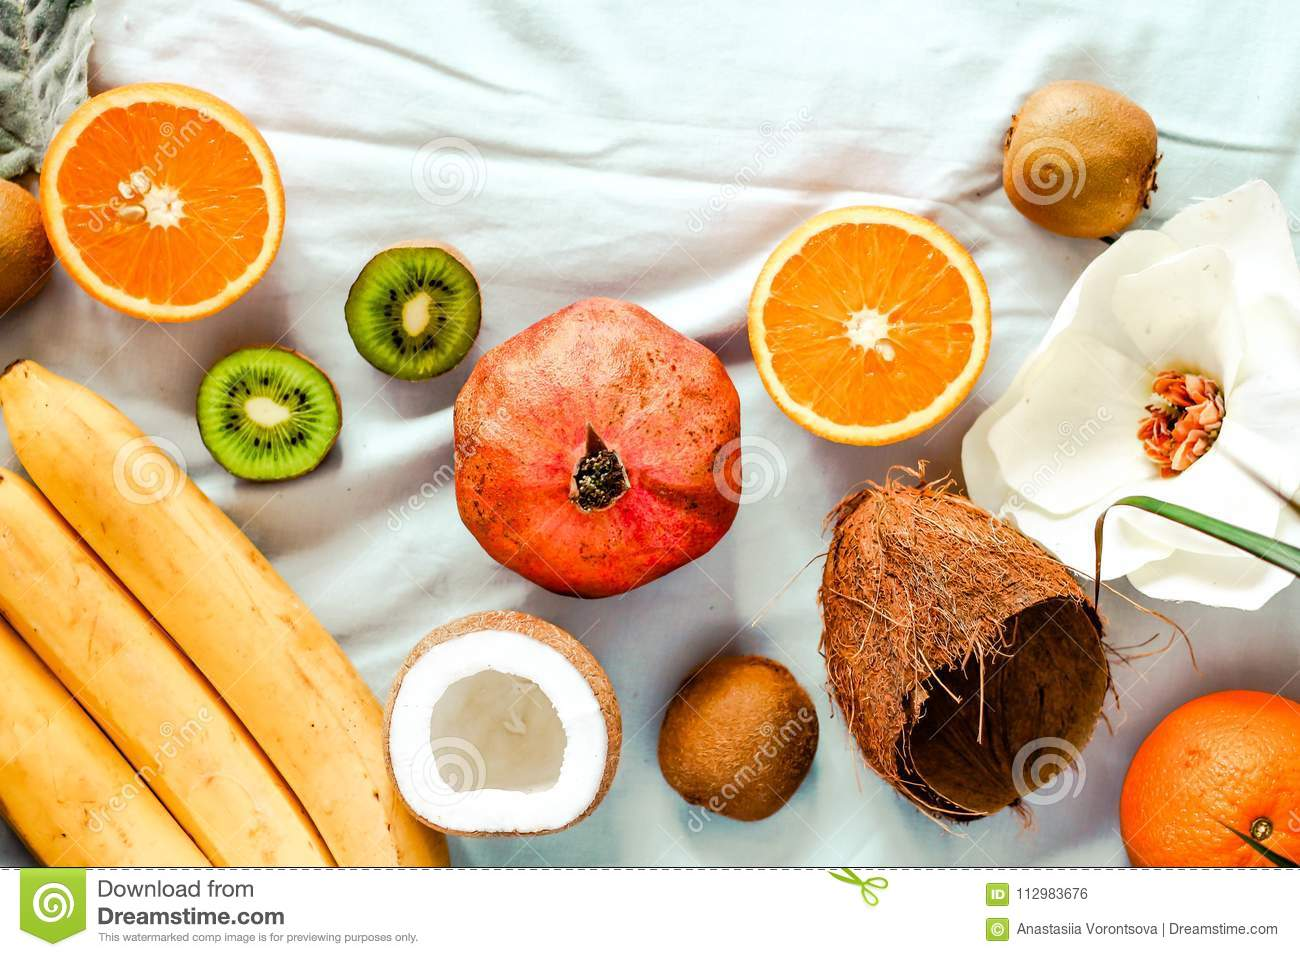 Fresh fruit background. Healthy eating and dieting concept. Winter assortment. Top view